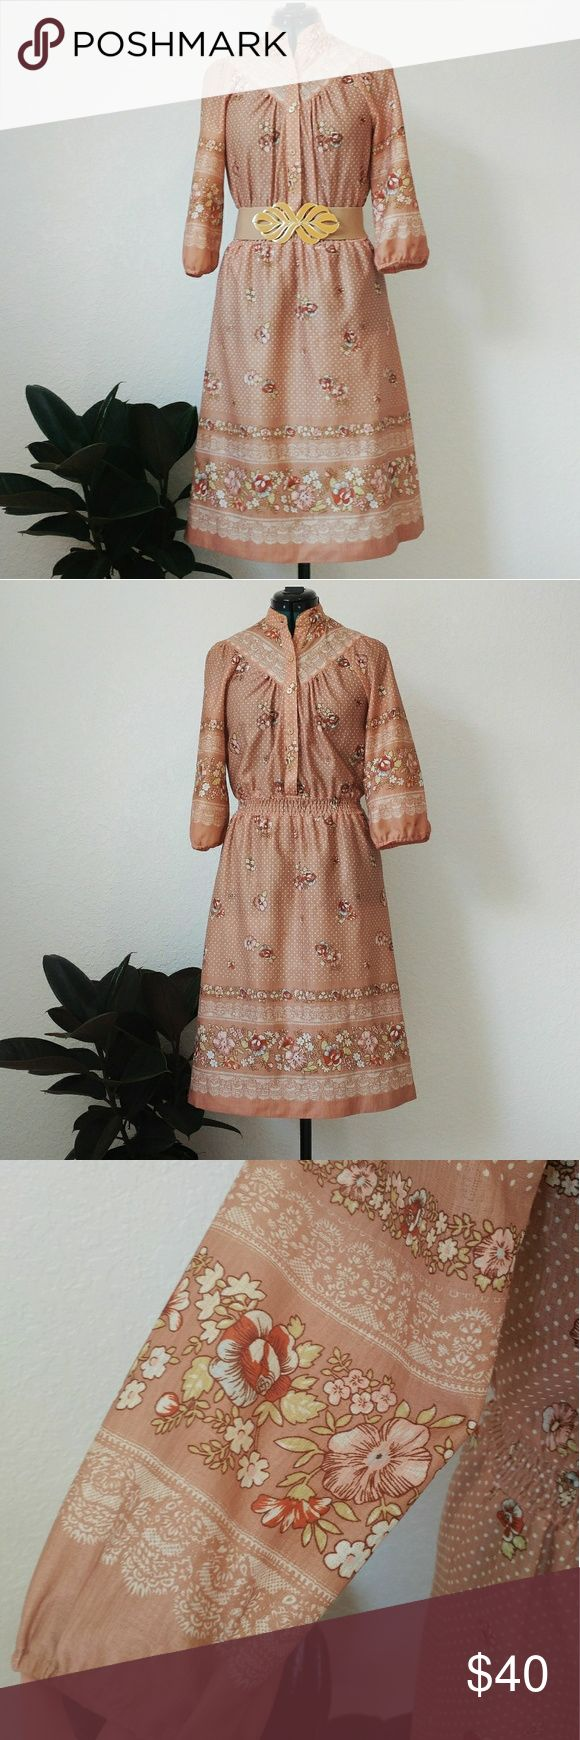 Vintage 70's Bohemian Festival Dress This bohemian style dress is in great vintage condition! The little polka dots and floral print is just too cute. Midi length and smocked waist. A couple of faint spots that are barely noticeable. Perfect for the festival and fall season. Vintage Dresses